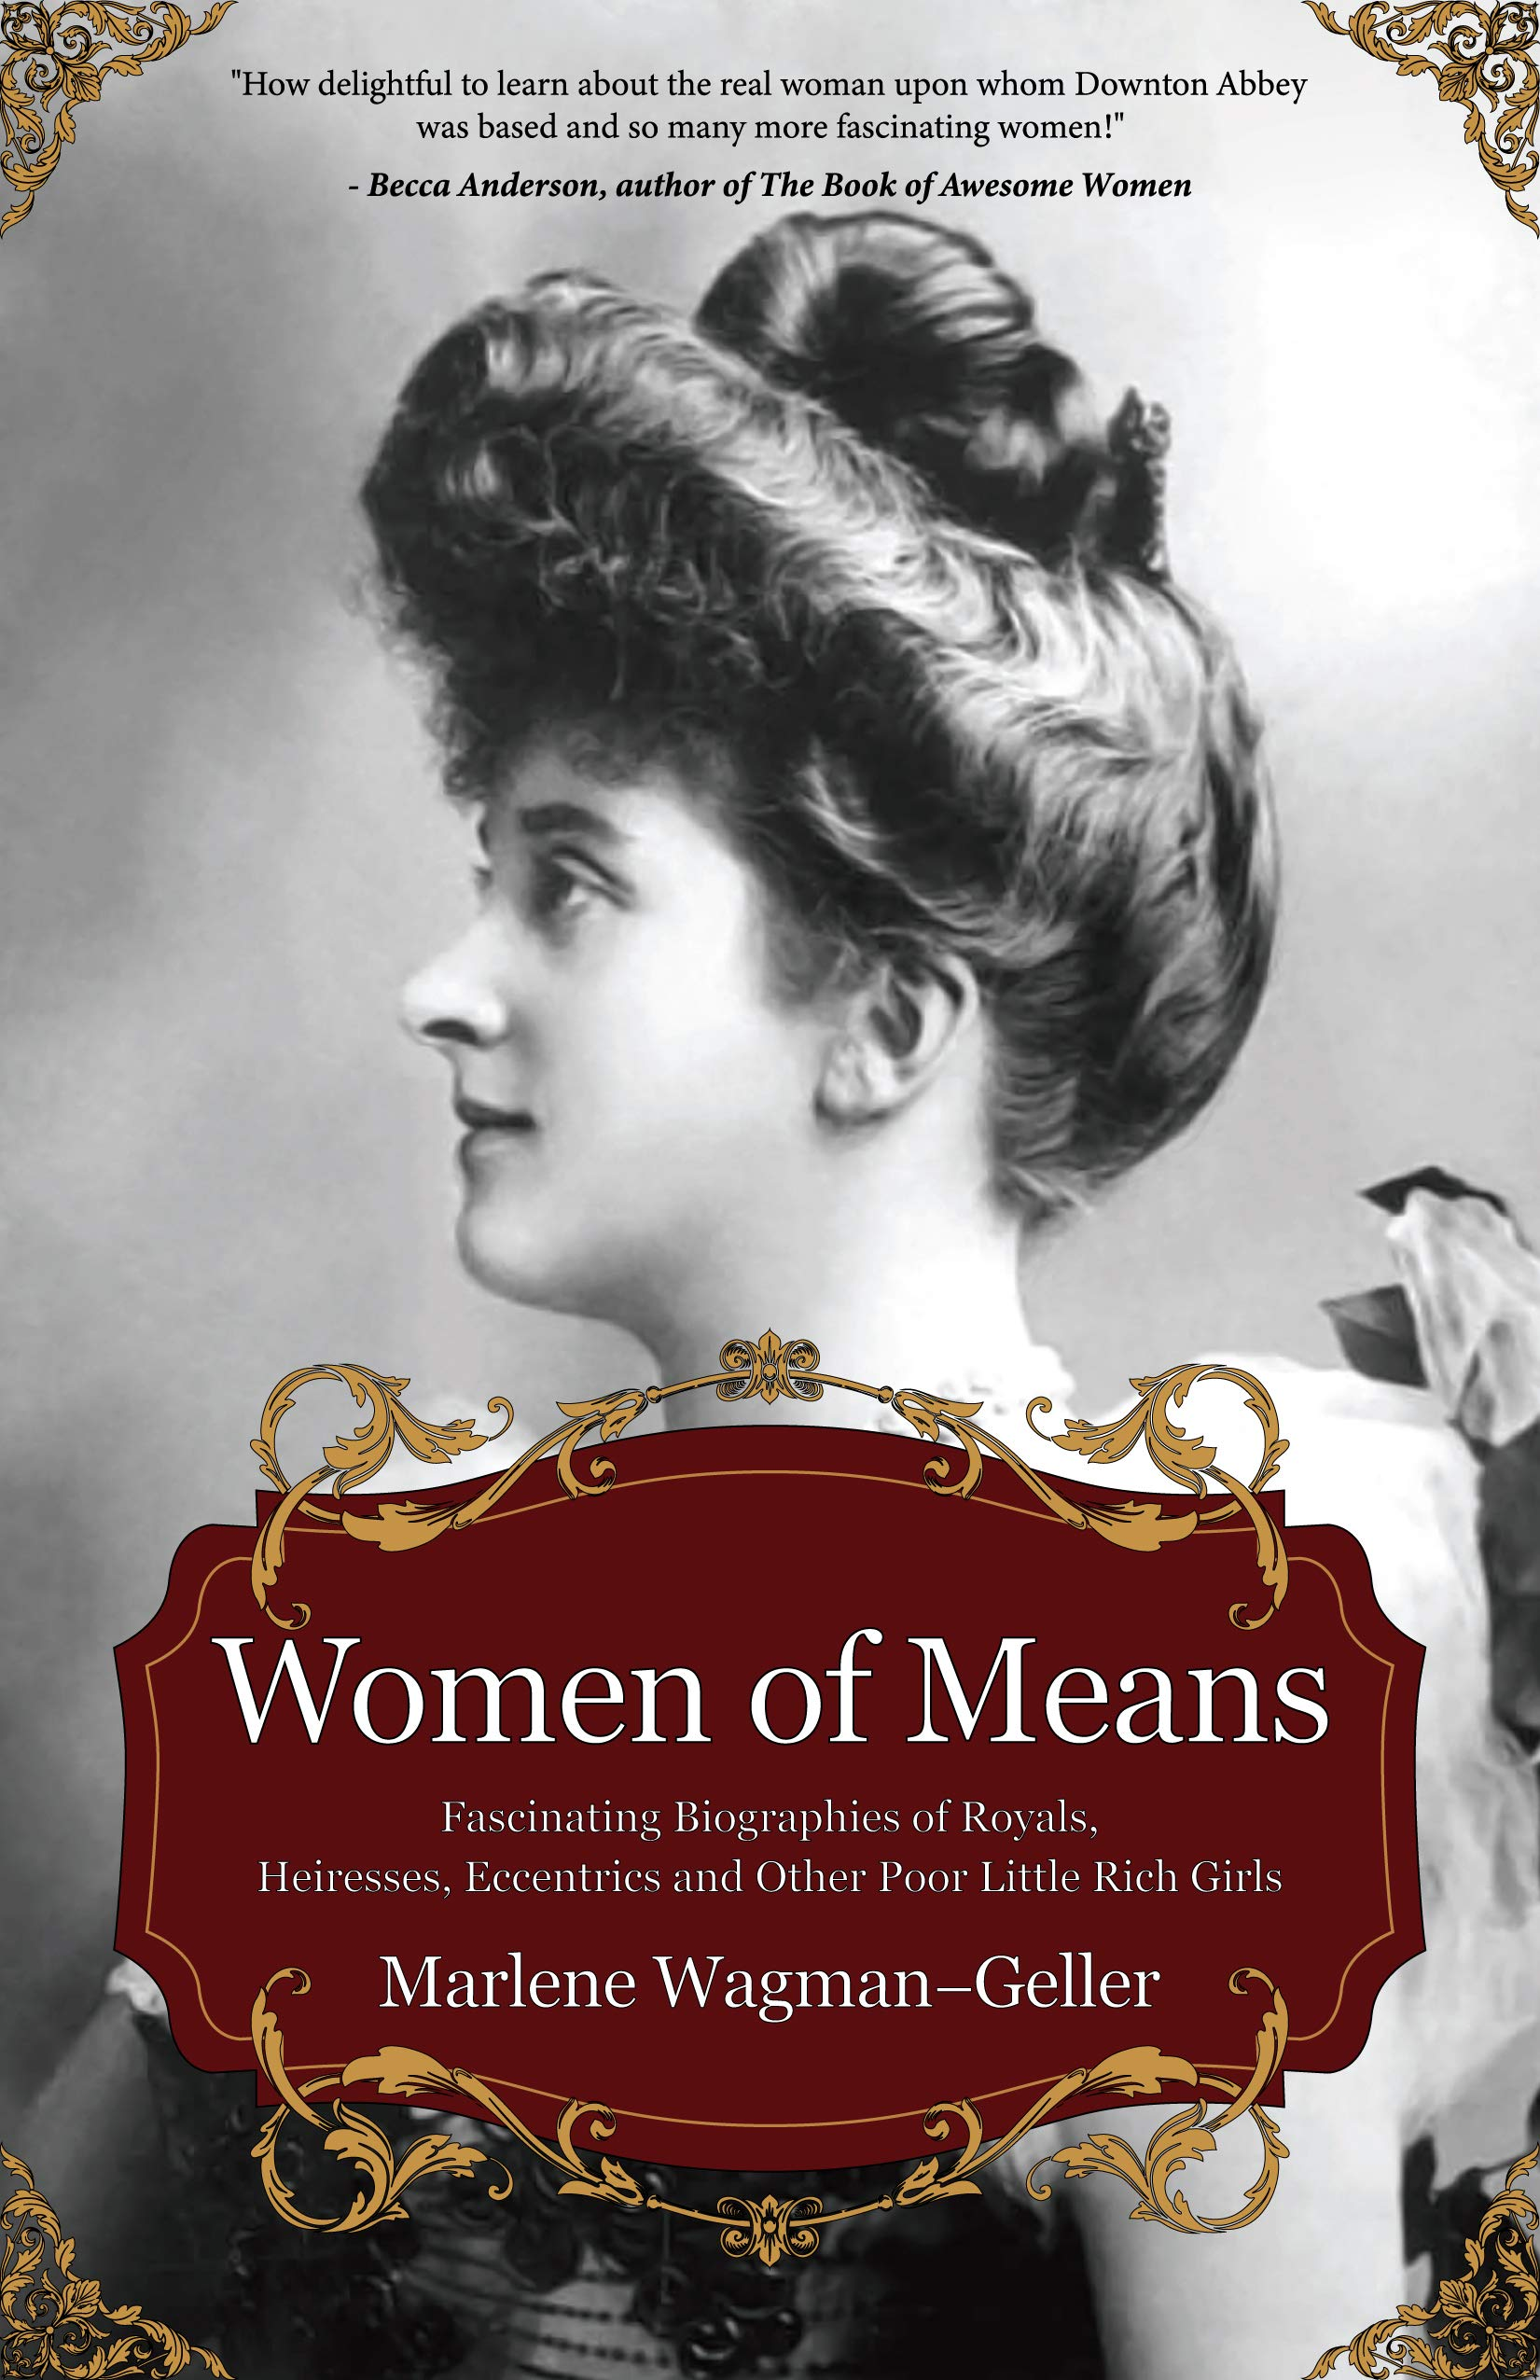 Women of Means: The Fascinating Biographies of Royals, Heiresses, Eccentrics and Other Poor Little Rich Girls (Bios of Royalty and Rich & Famous, for Fans of Lady in Waiting) pdf epub